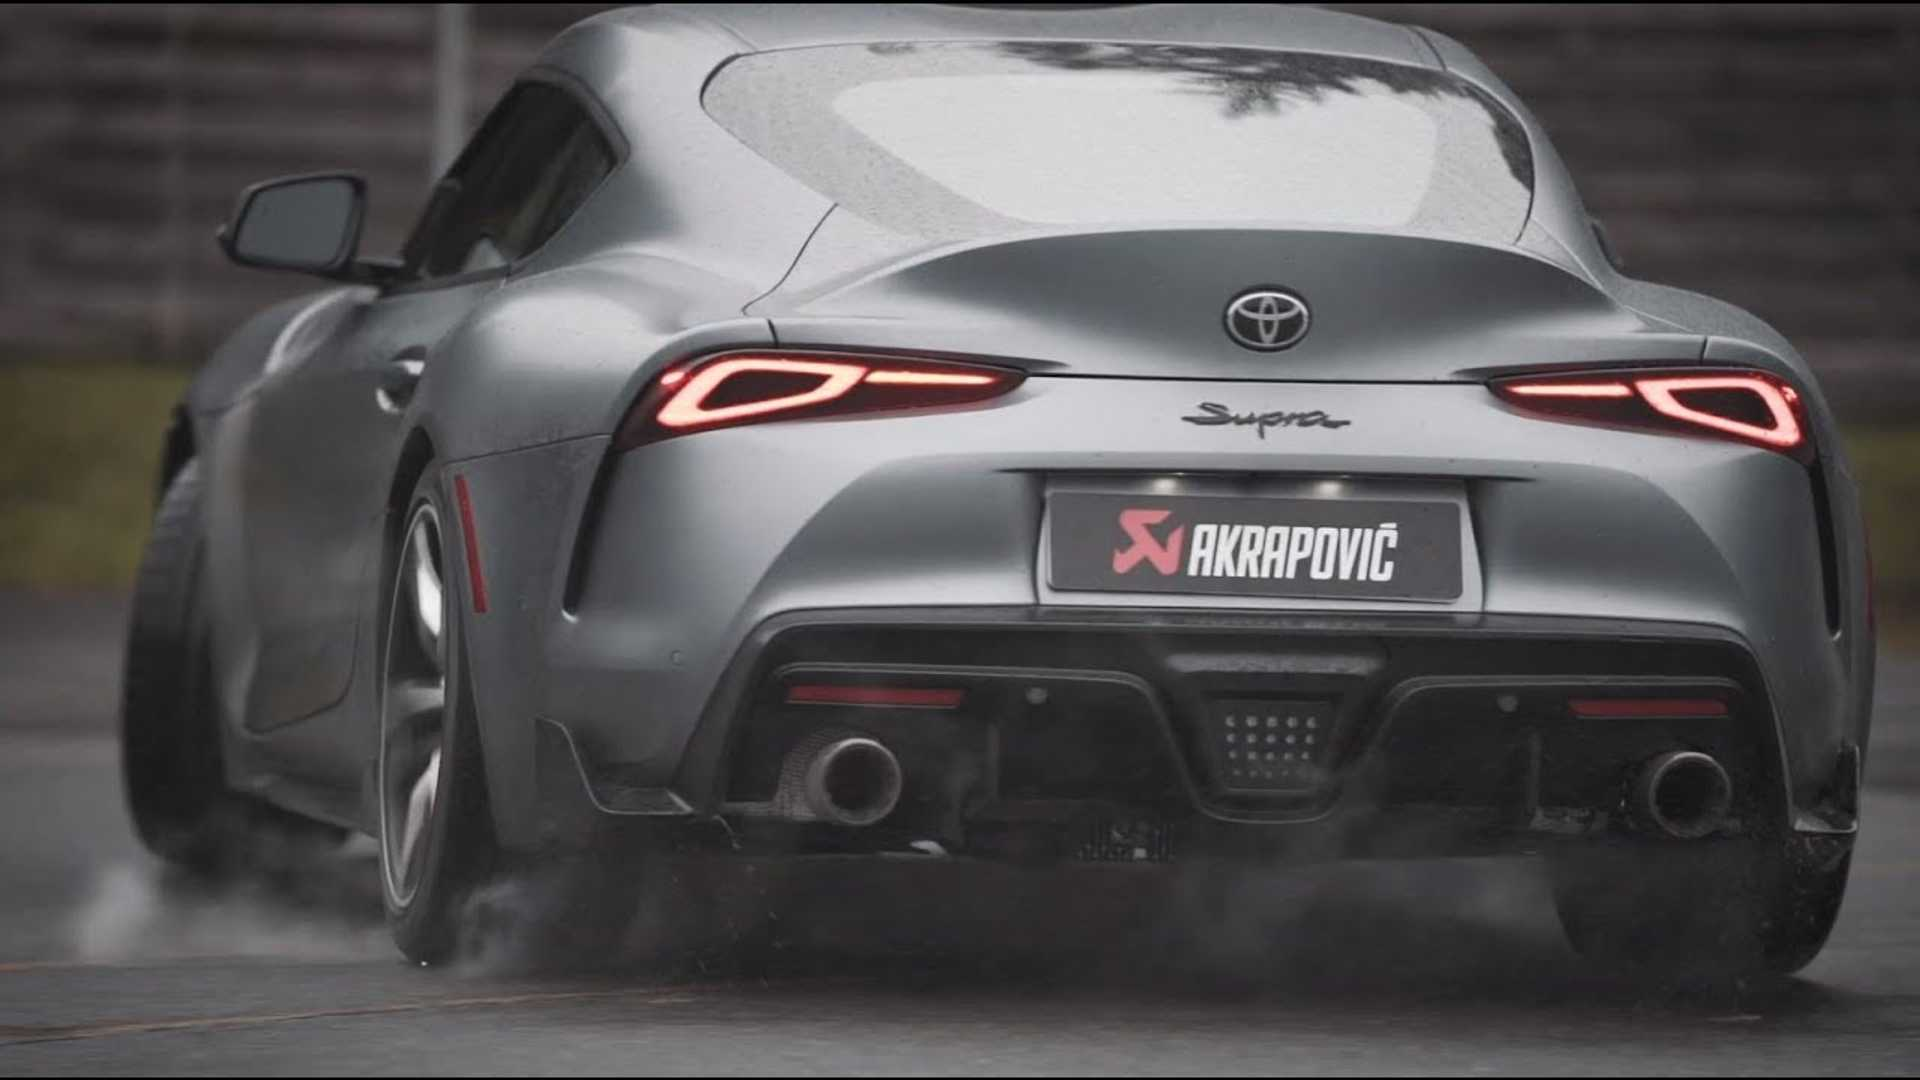 2020 Toyota Supra Sounds Delicious With Akrapovic Exhaust